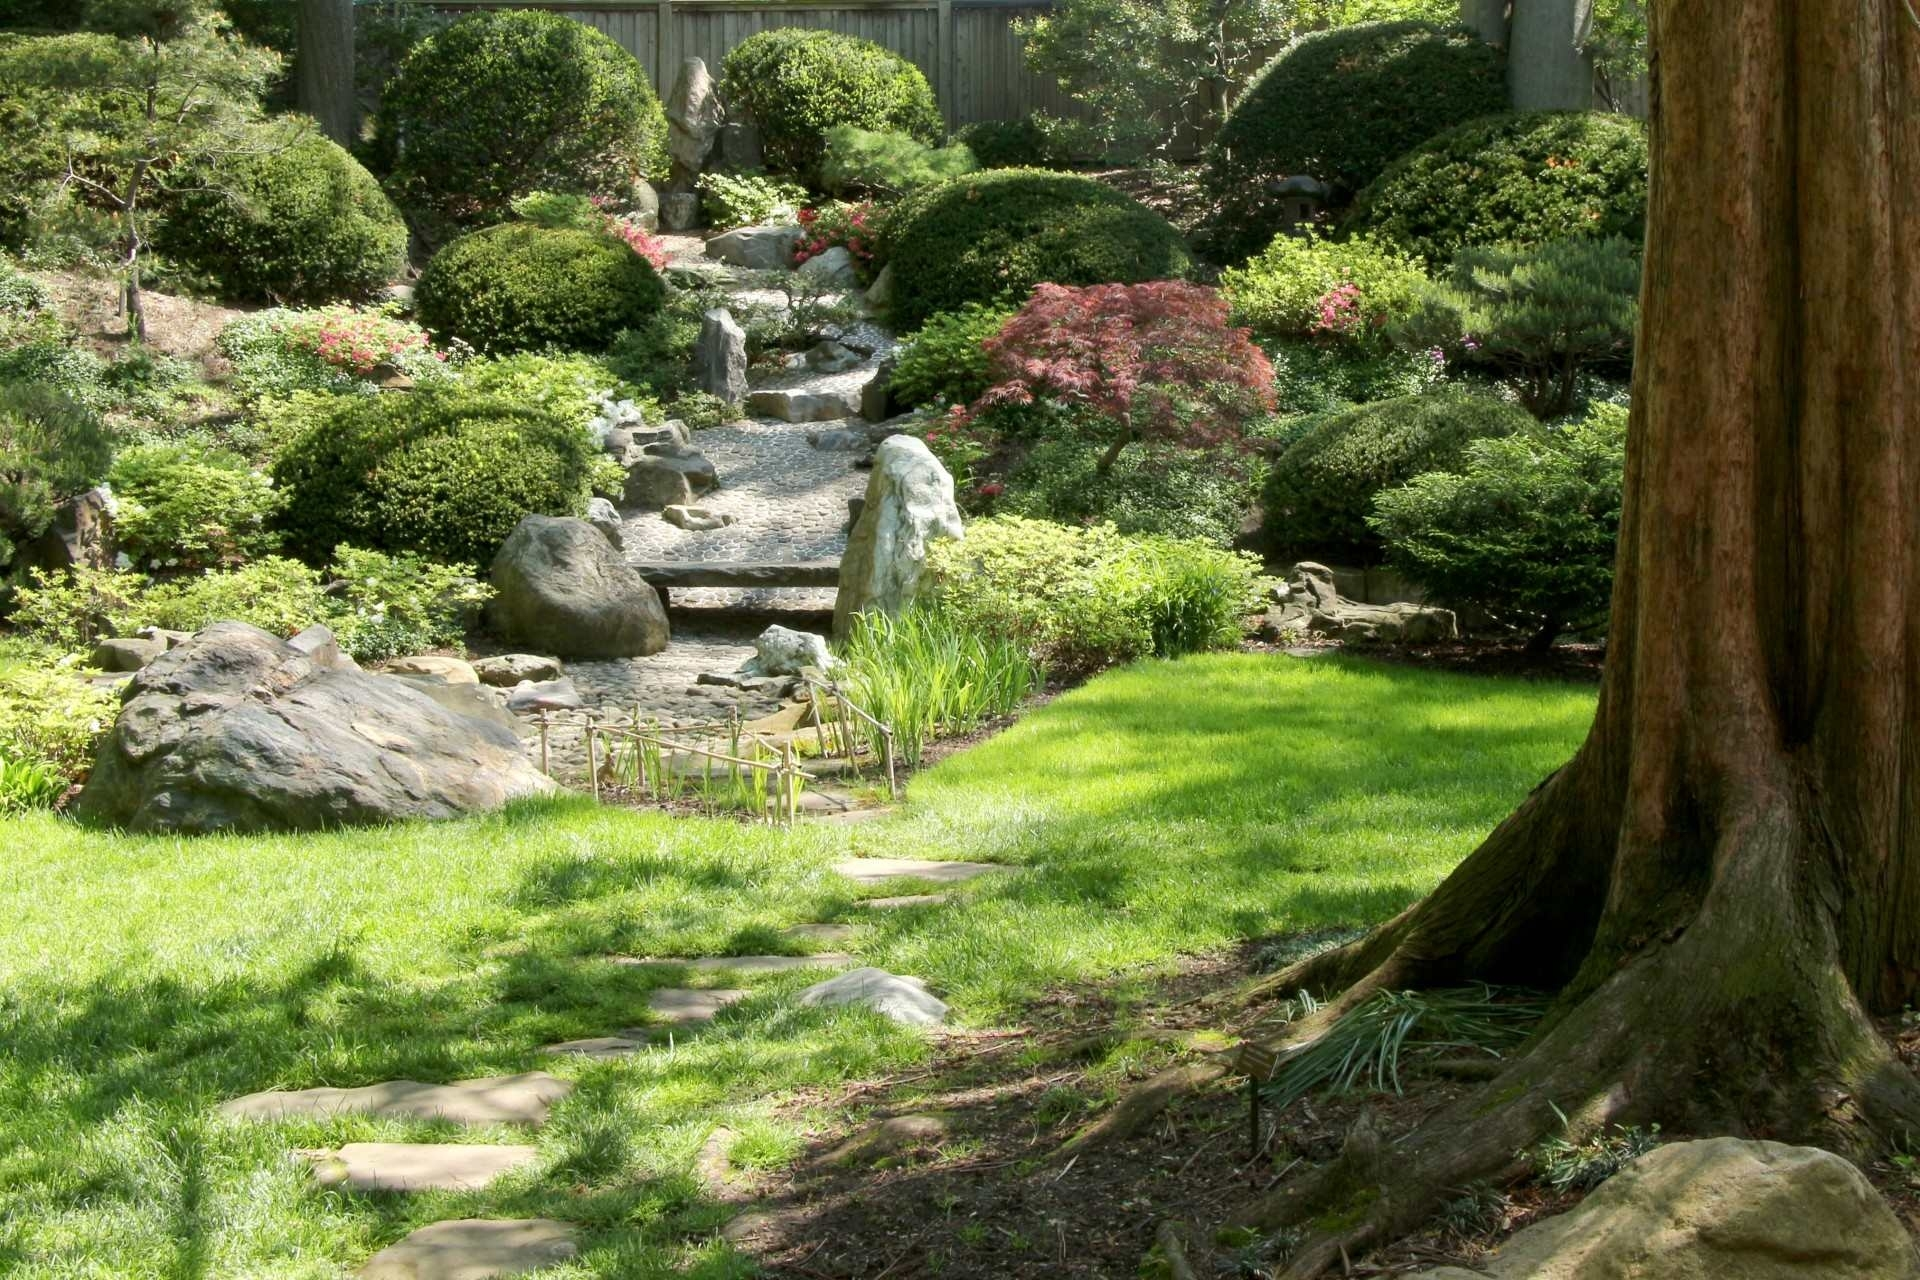 3 Basic Japanese Garden Principles Landscaper Should Know within Zen Garden Design Principles